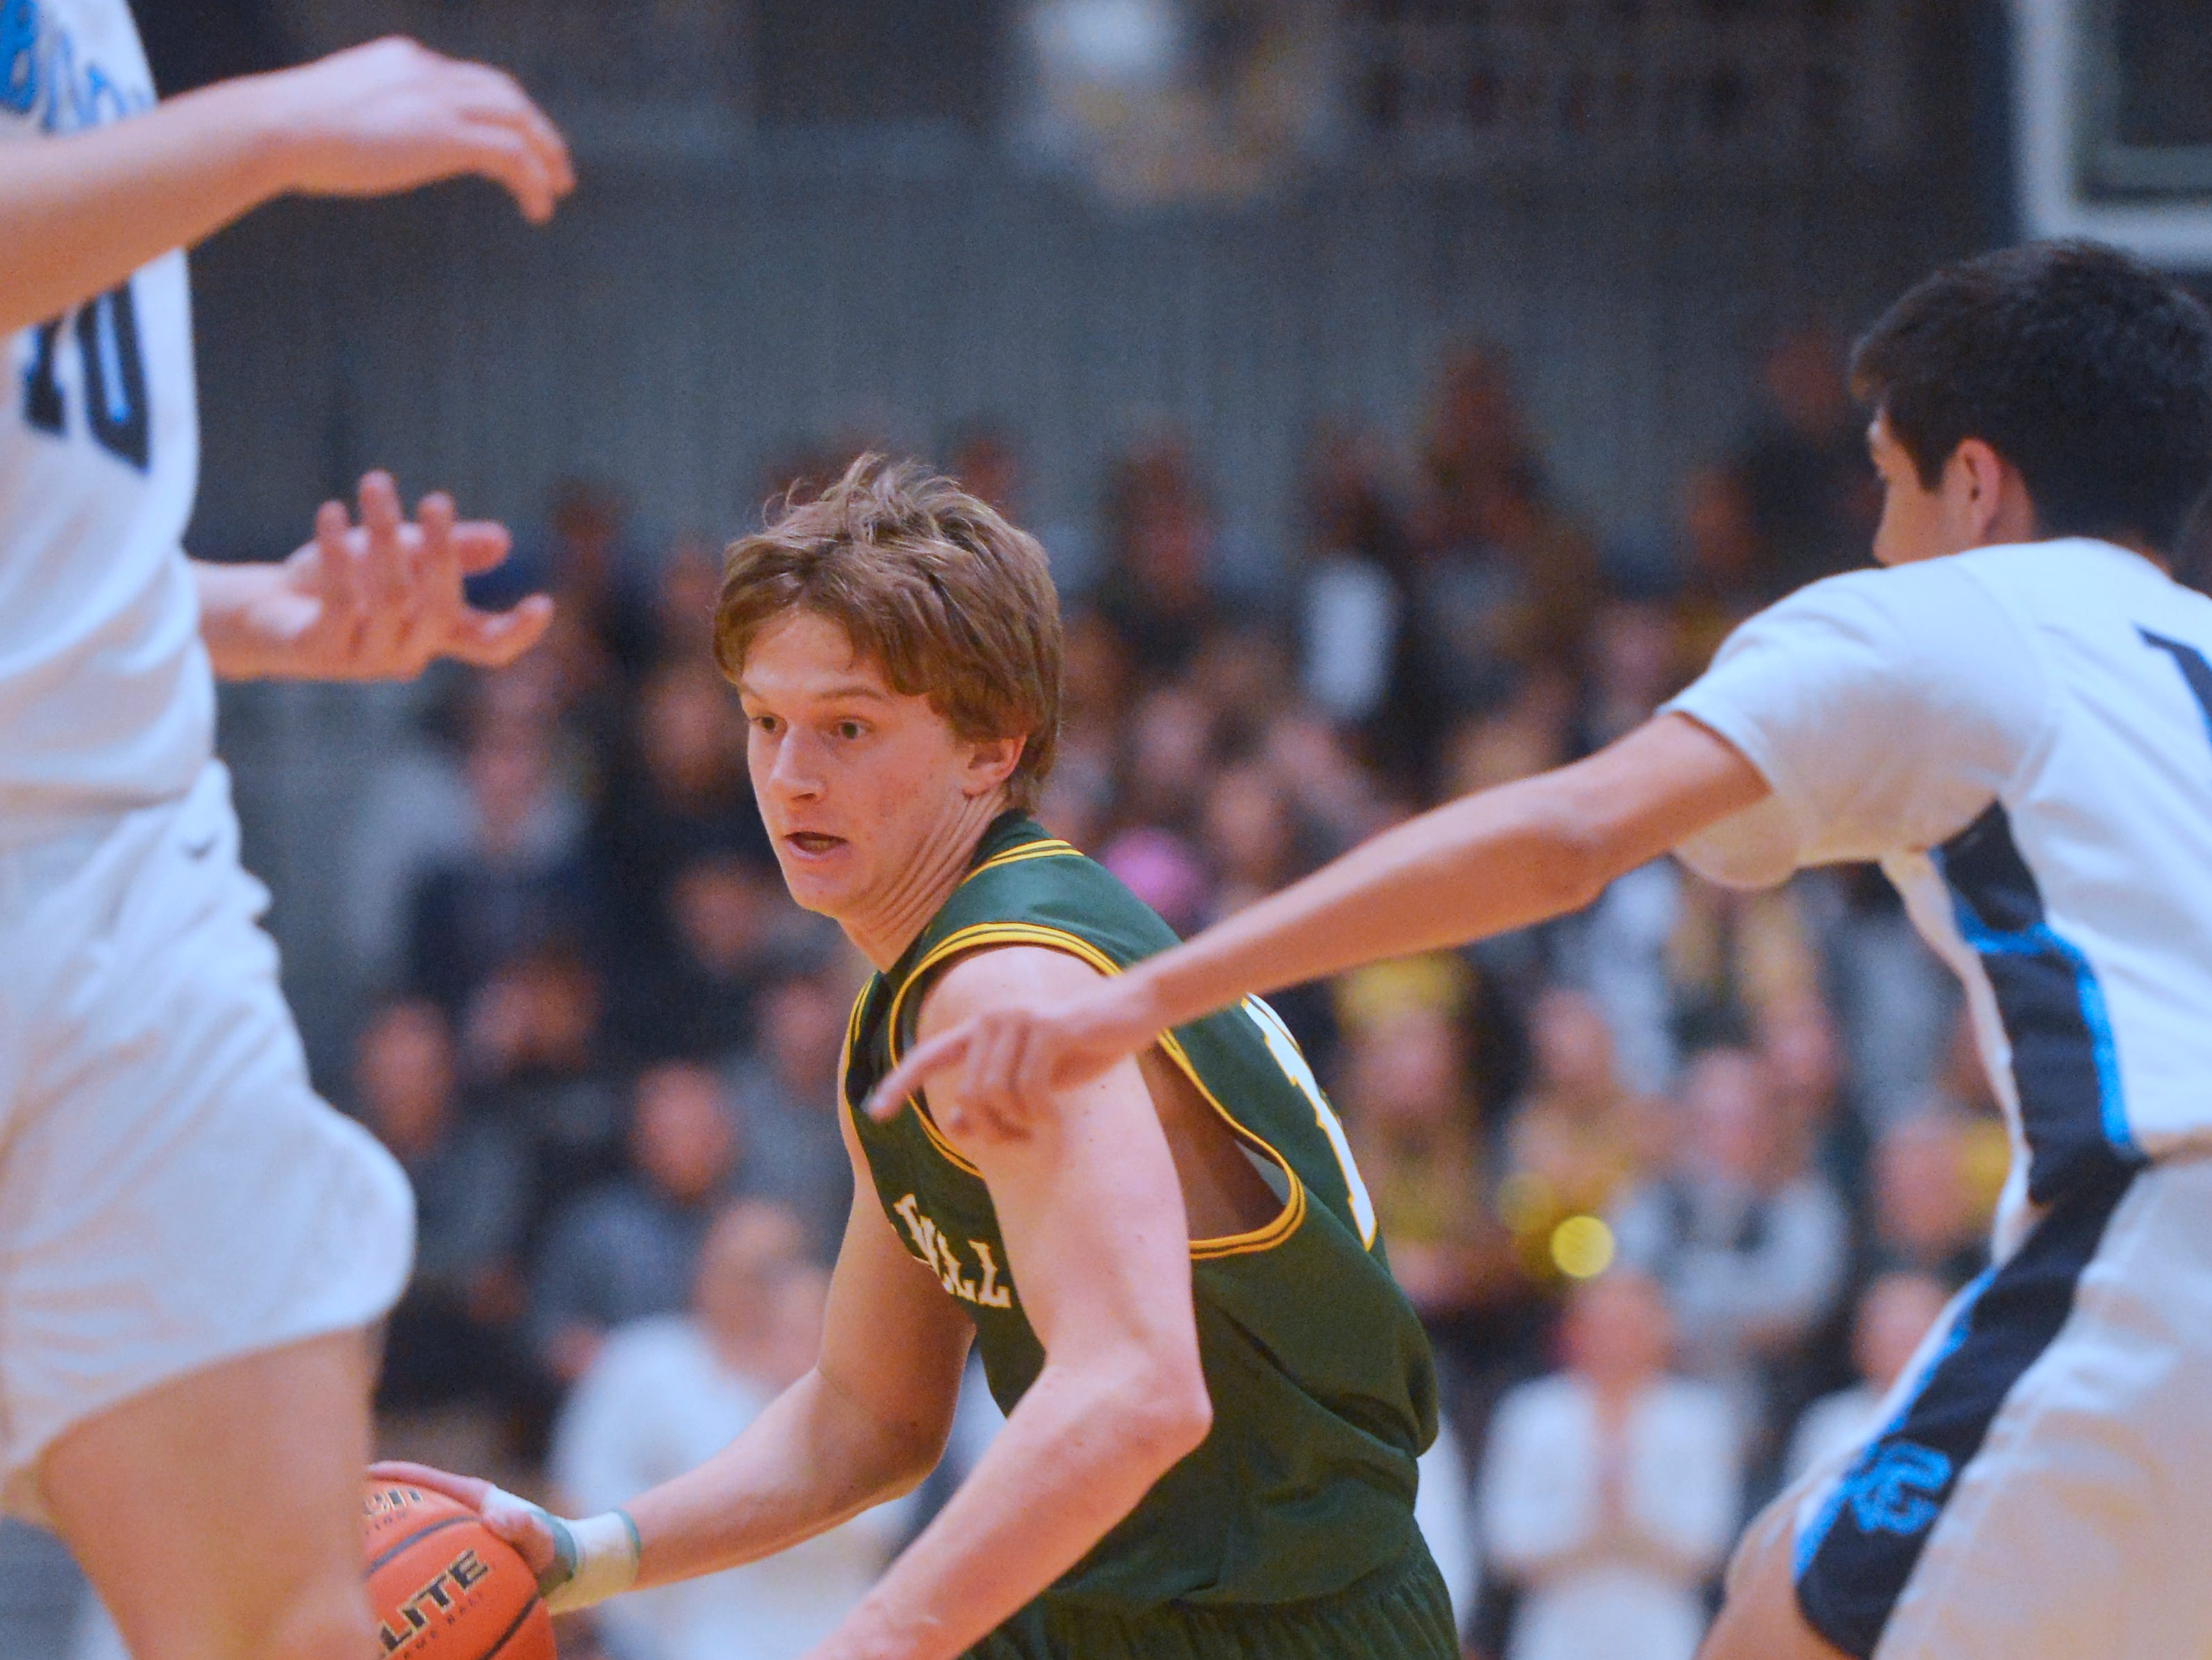 CMR's Cason Taylor looks for an opening in the boys crosstown basketball game against Great Falls High in the Swarthout Fieldhouse, Tuesday.